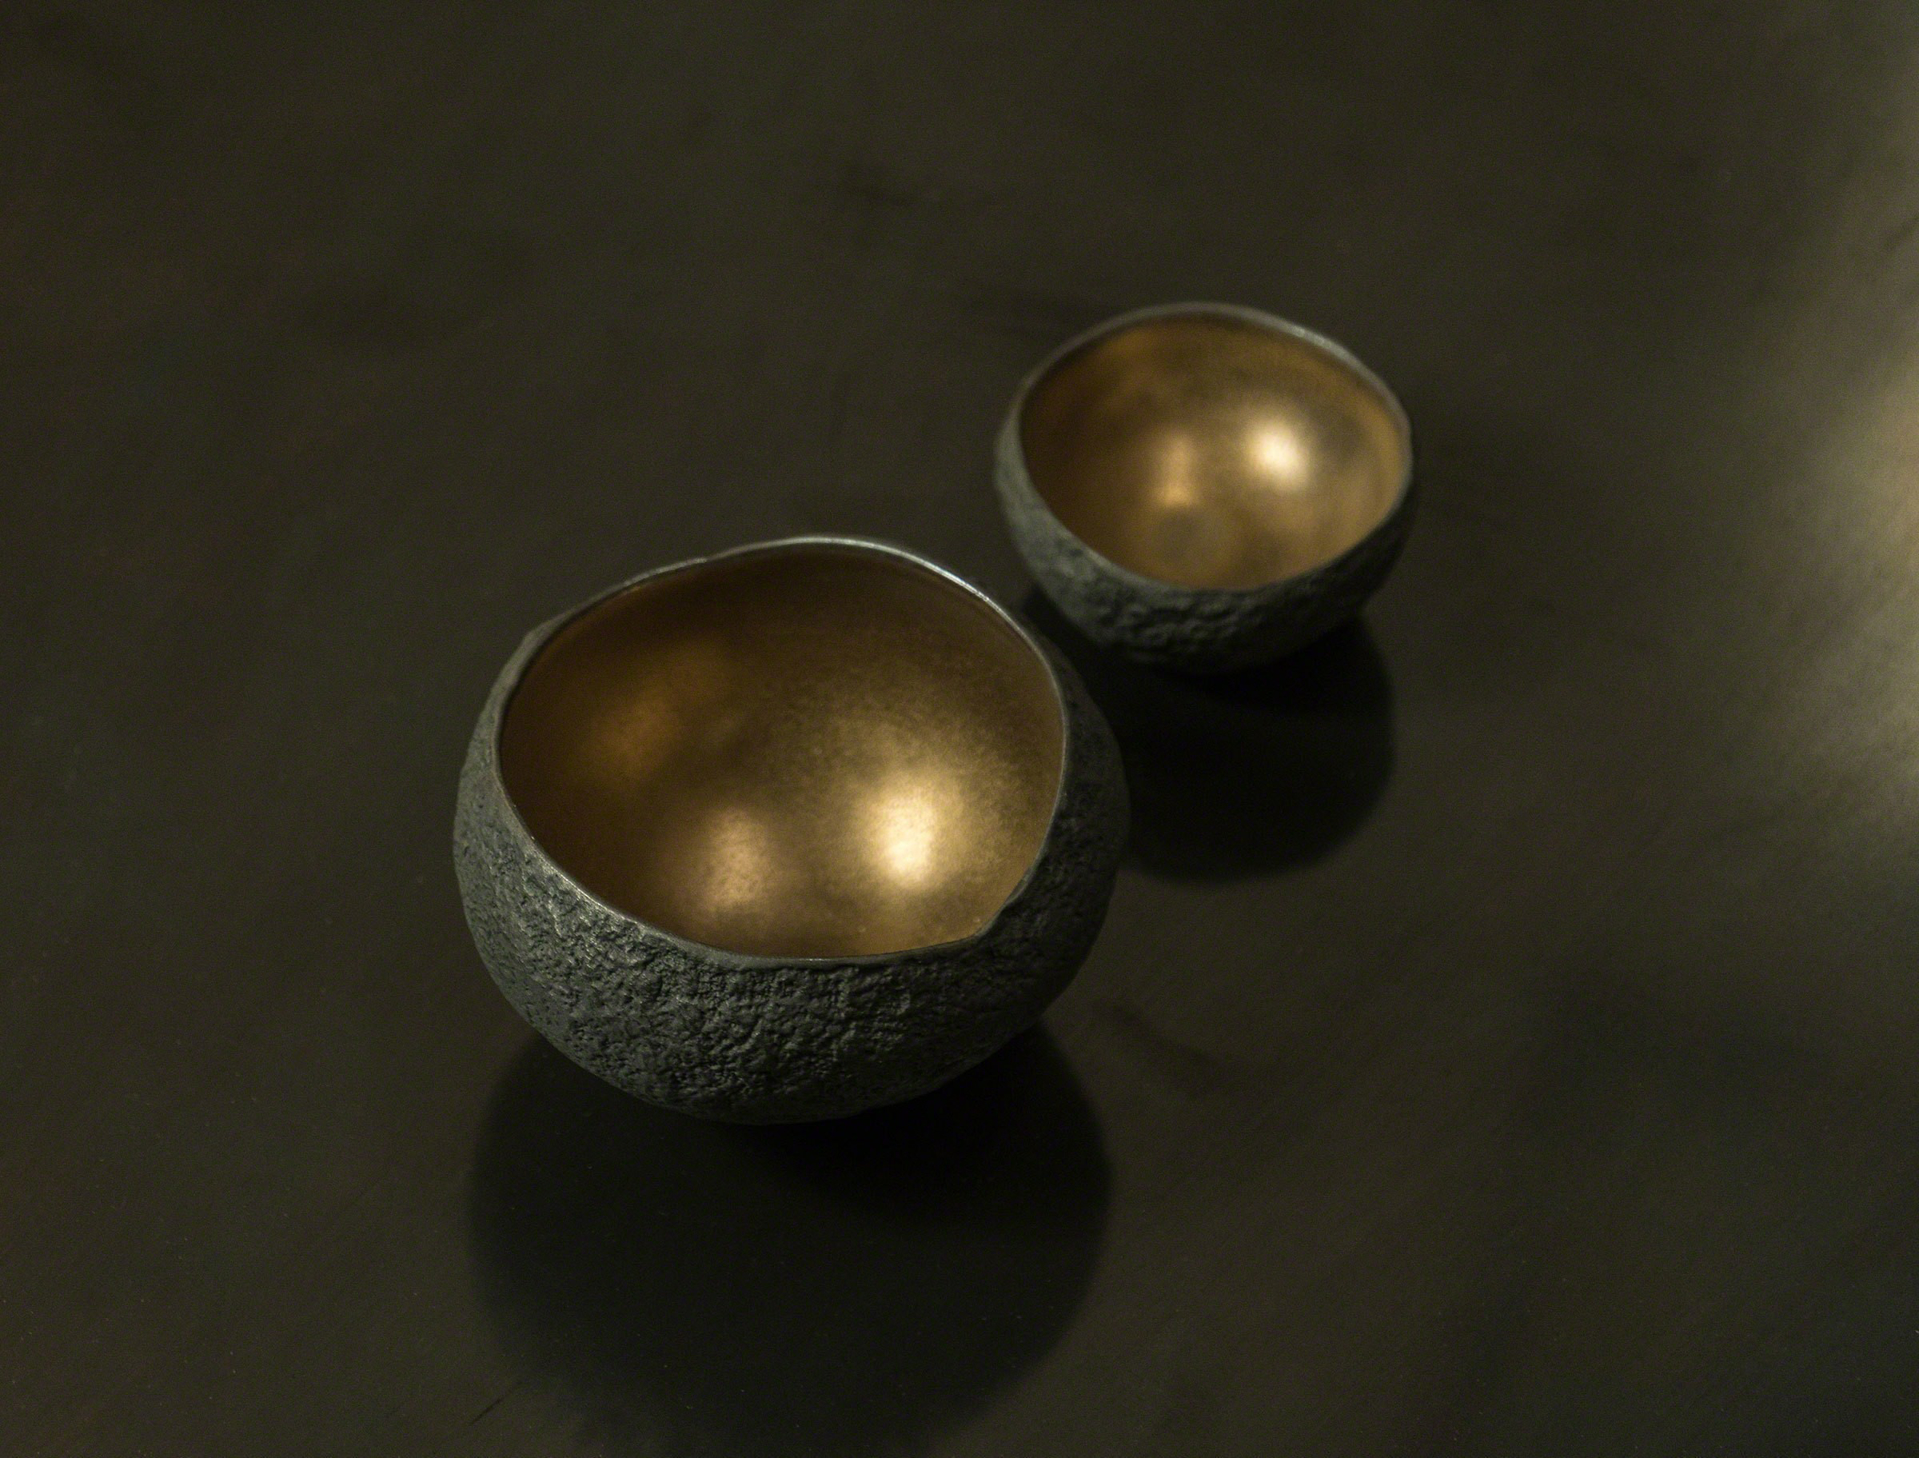 Set of 8 small CERAMIC vessels  by Cristina Salusti